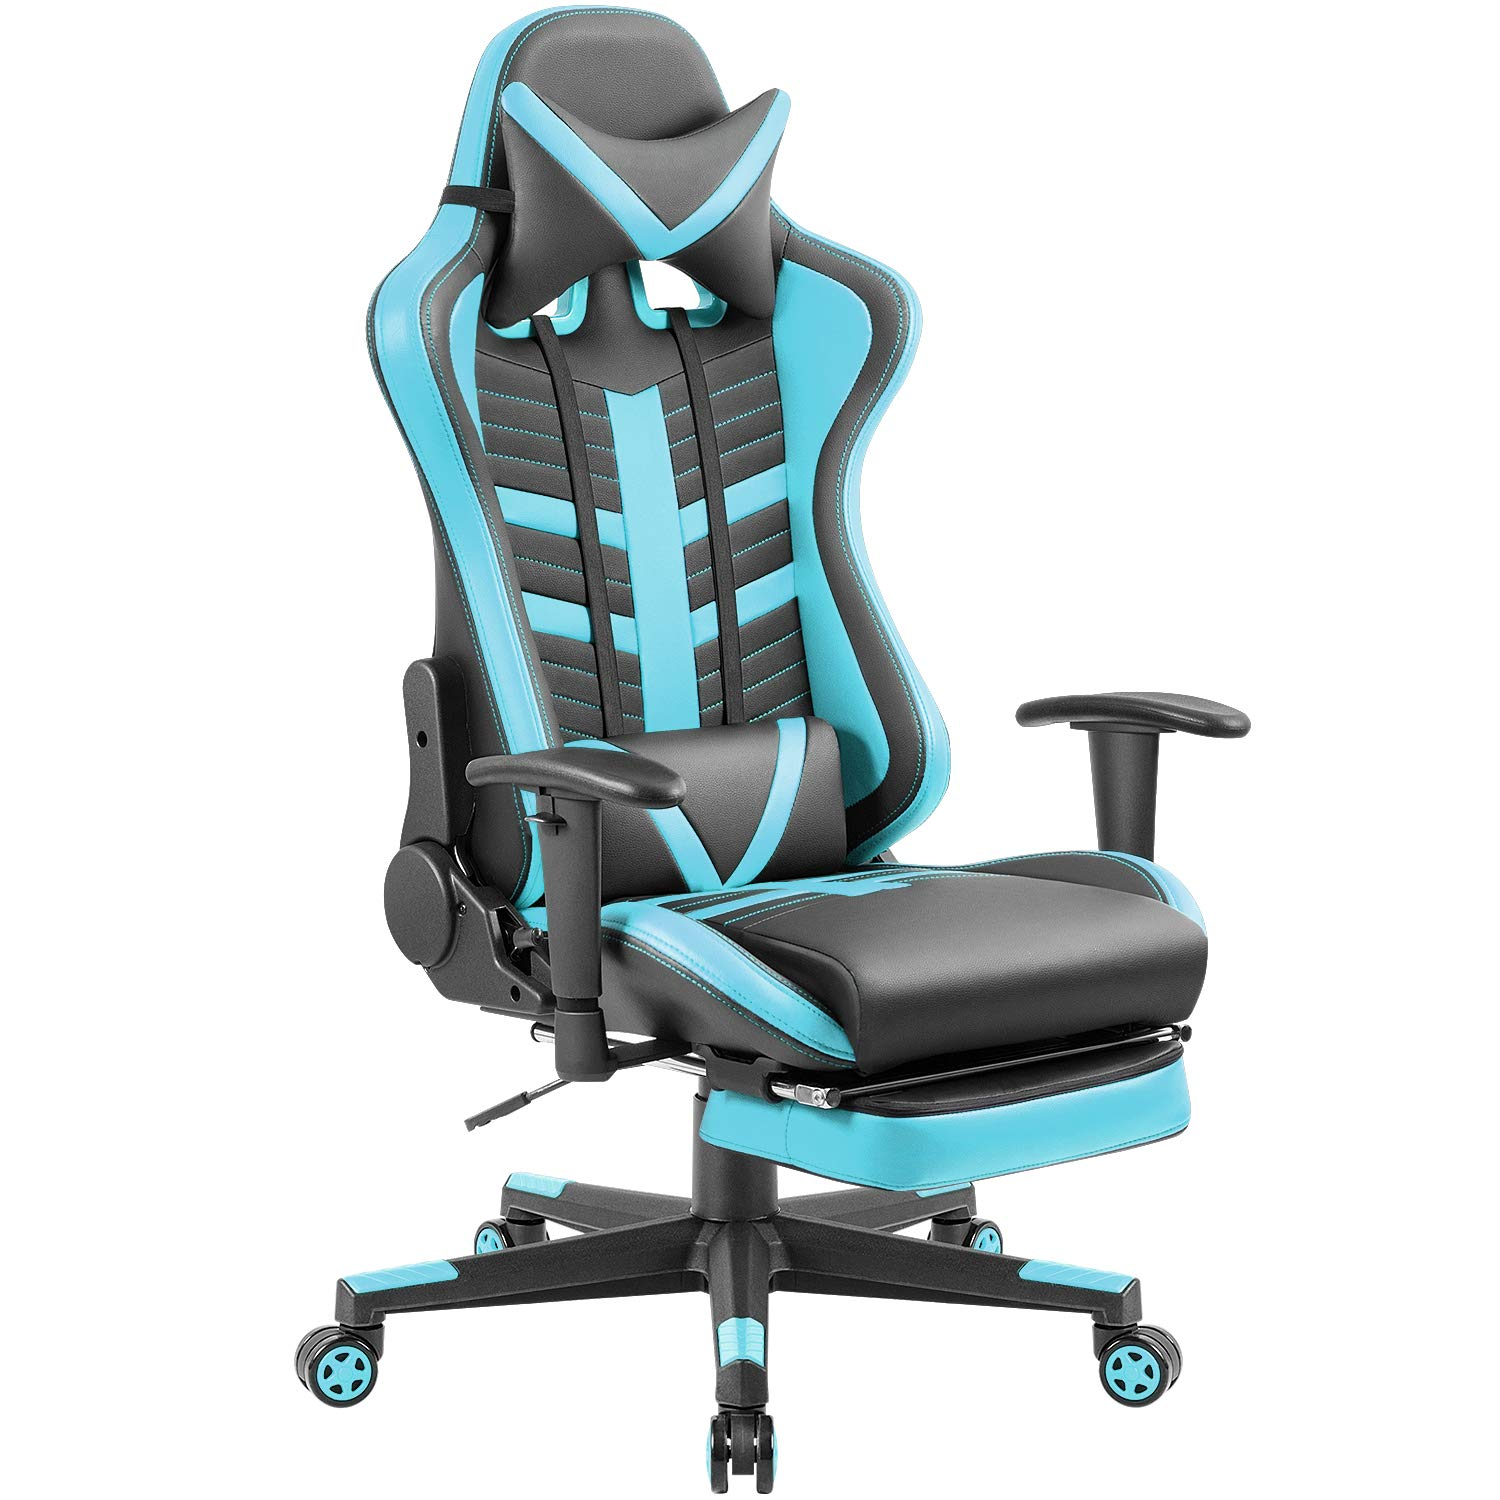 Homall Gaming Chairs under 200